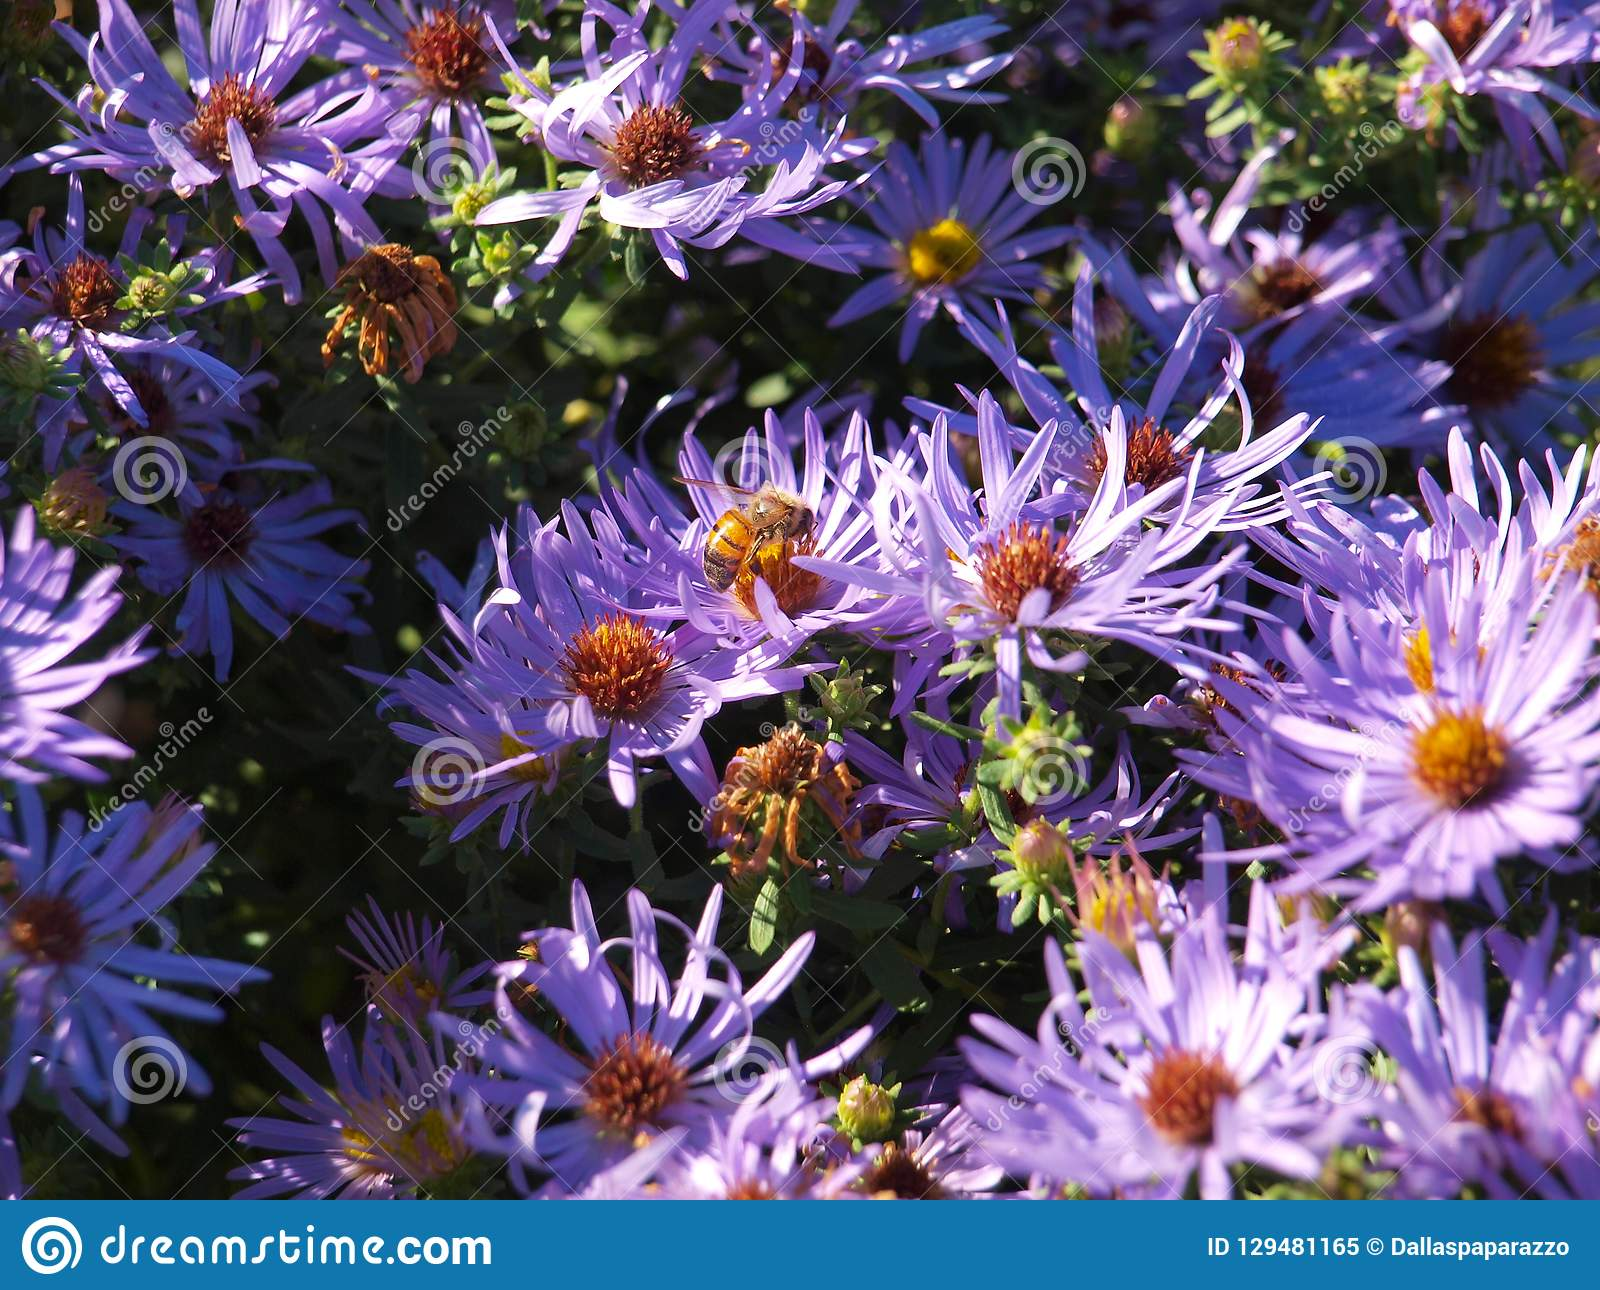 Honey Bee Takes Nectar From Blauwe Daisy Flower Bed